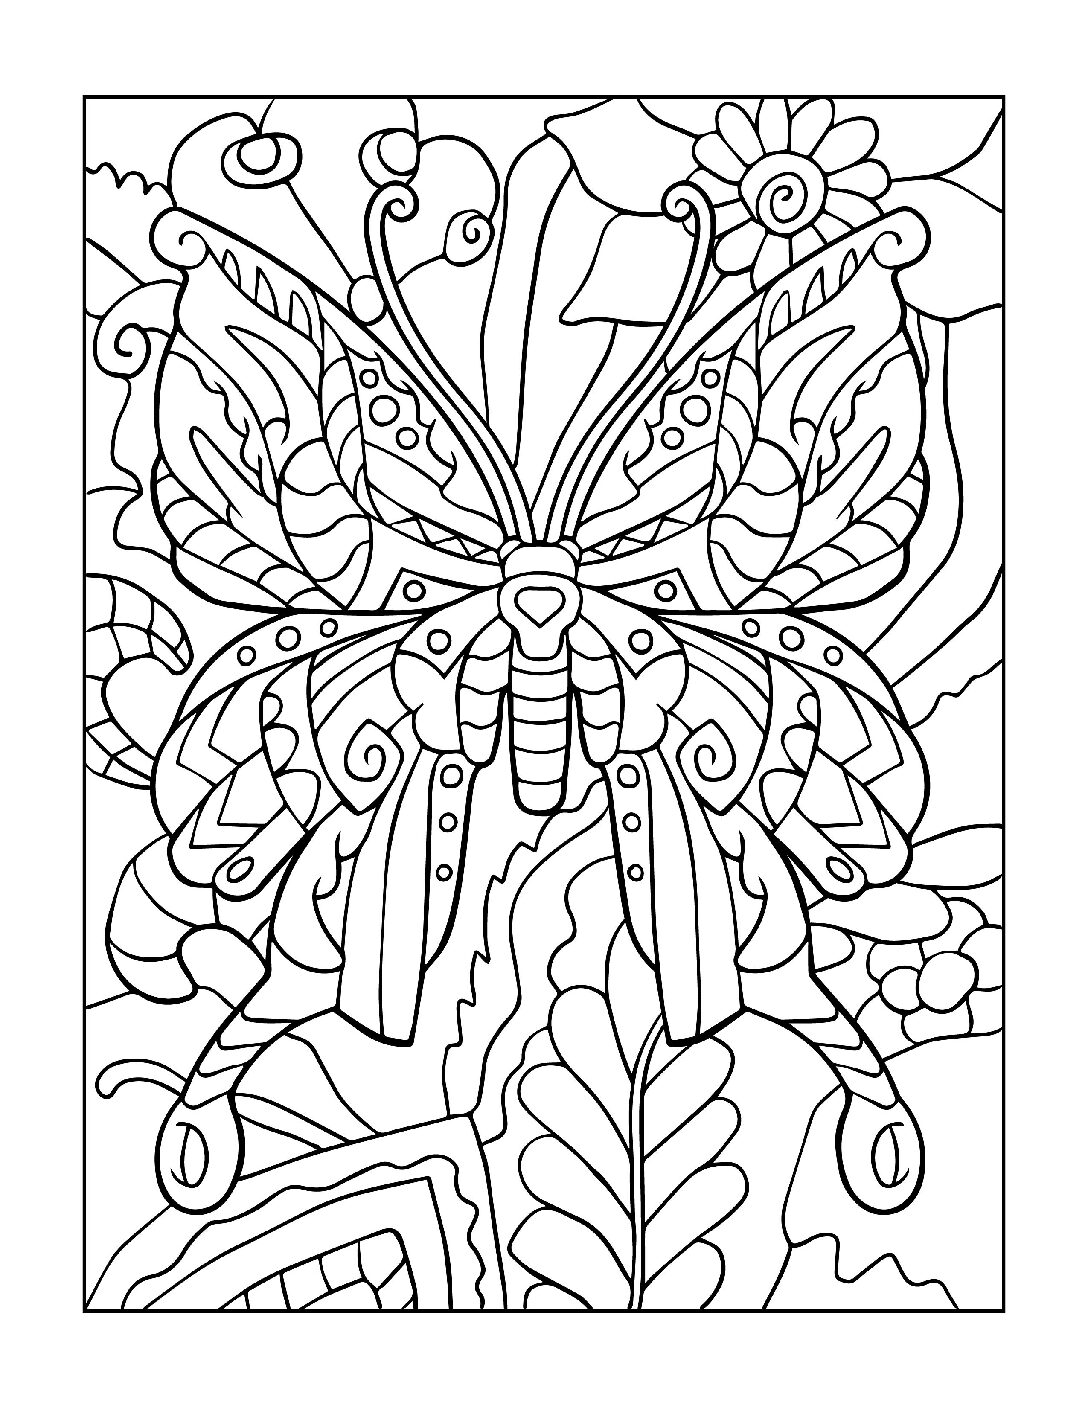 Coloring-Pages_Butterflies-8-01-1-pdf Free Printable Butterfly Colouring Pages